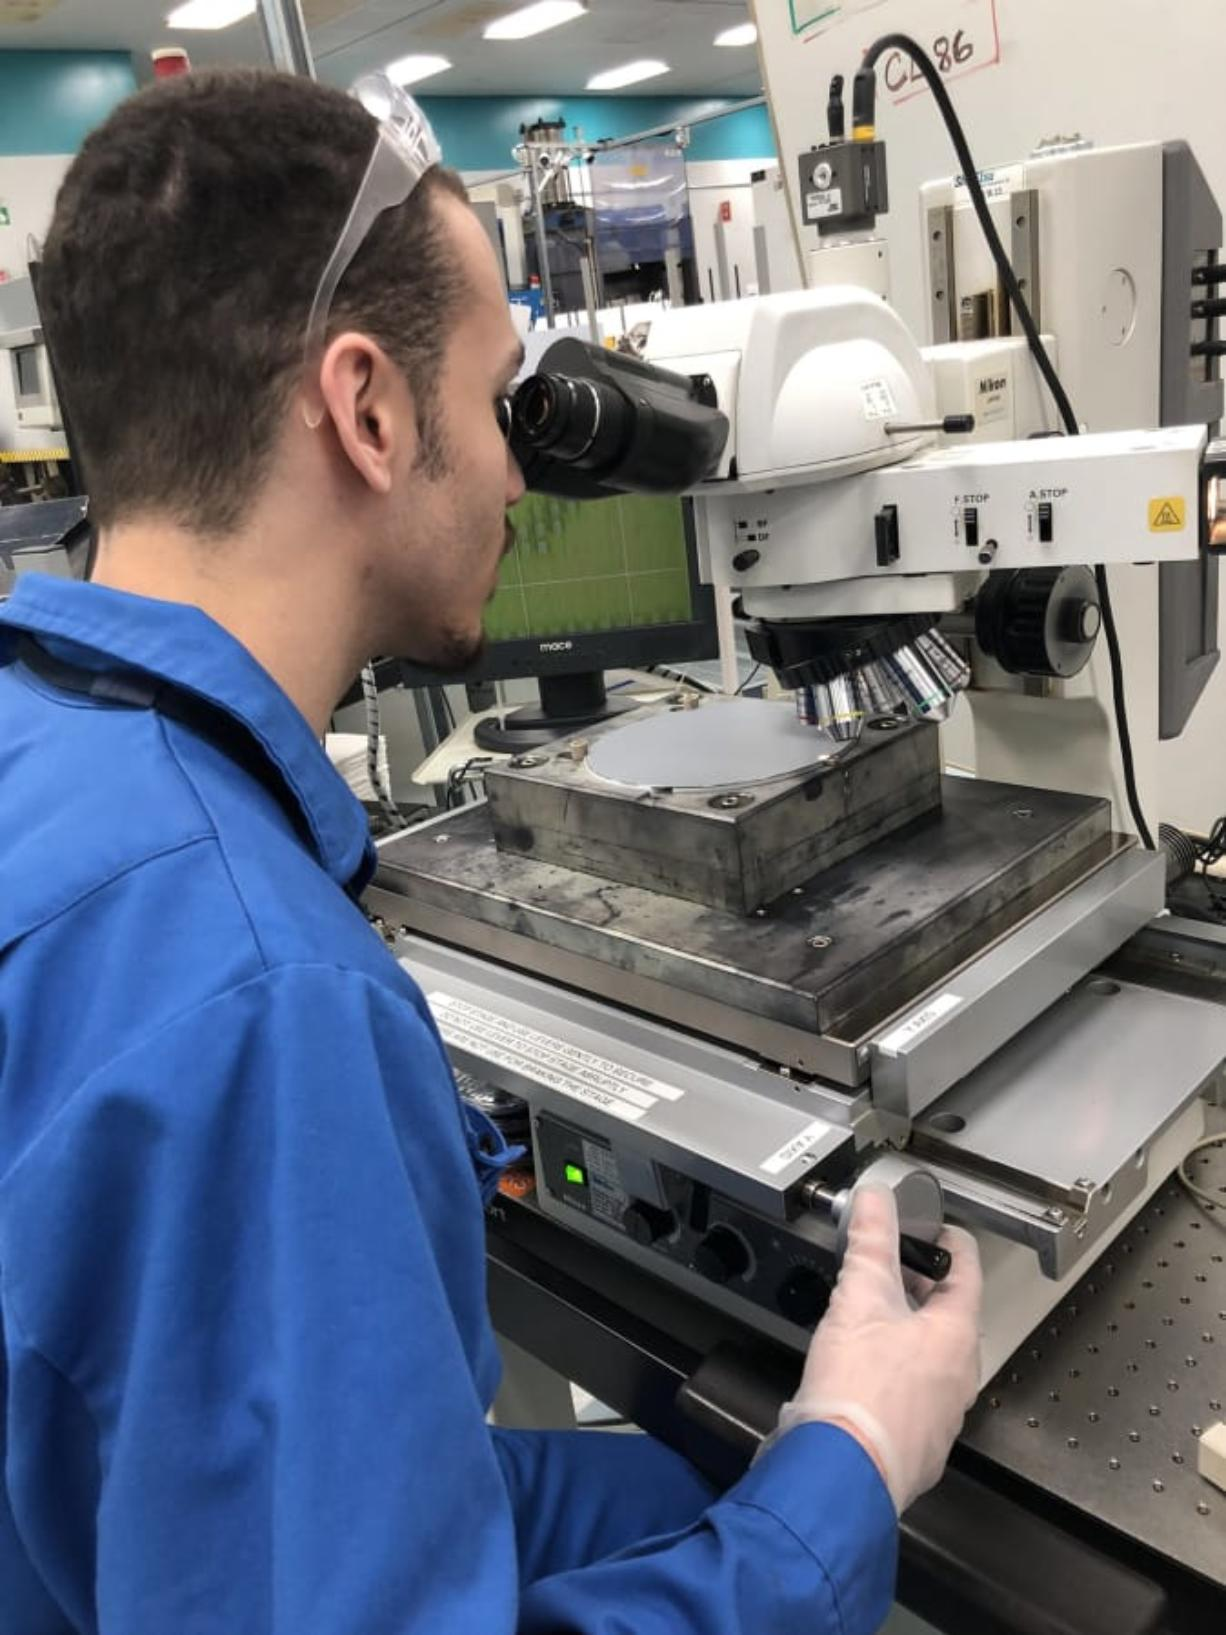 Devon Laverne, a 2018 graduate from Mountain View High School in Evergreen District, works in the laser mark department at SEH America in Vancouver. Laverne is attending mechatronics classes at Clark College while participating in the Career Launch program at SEH.